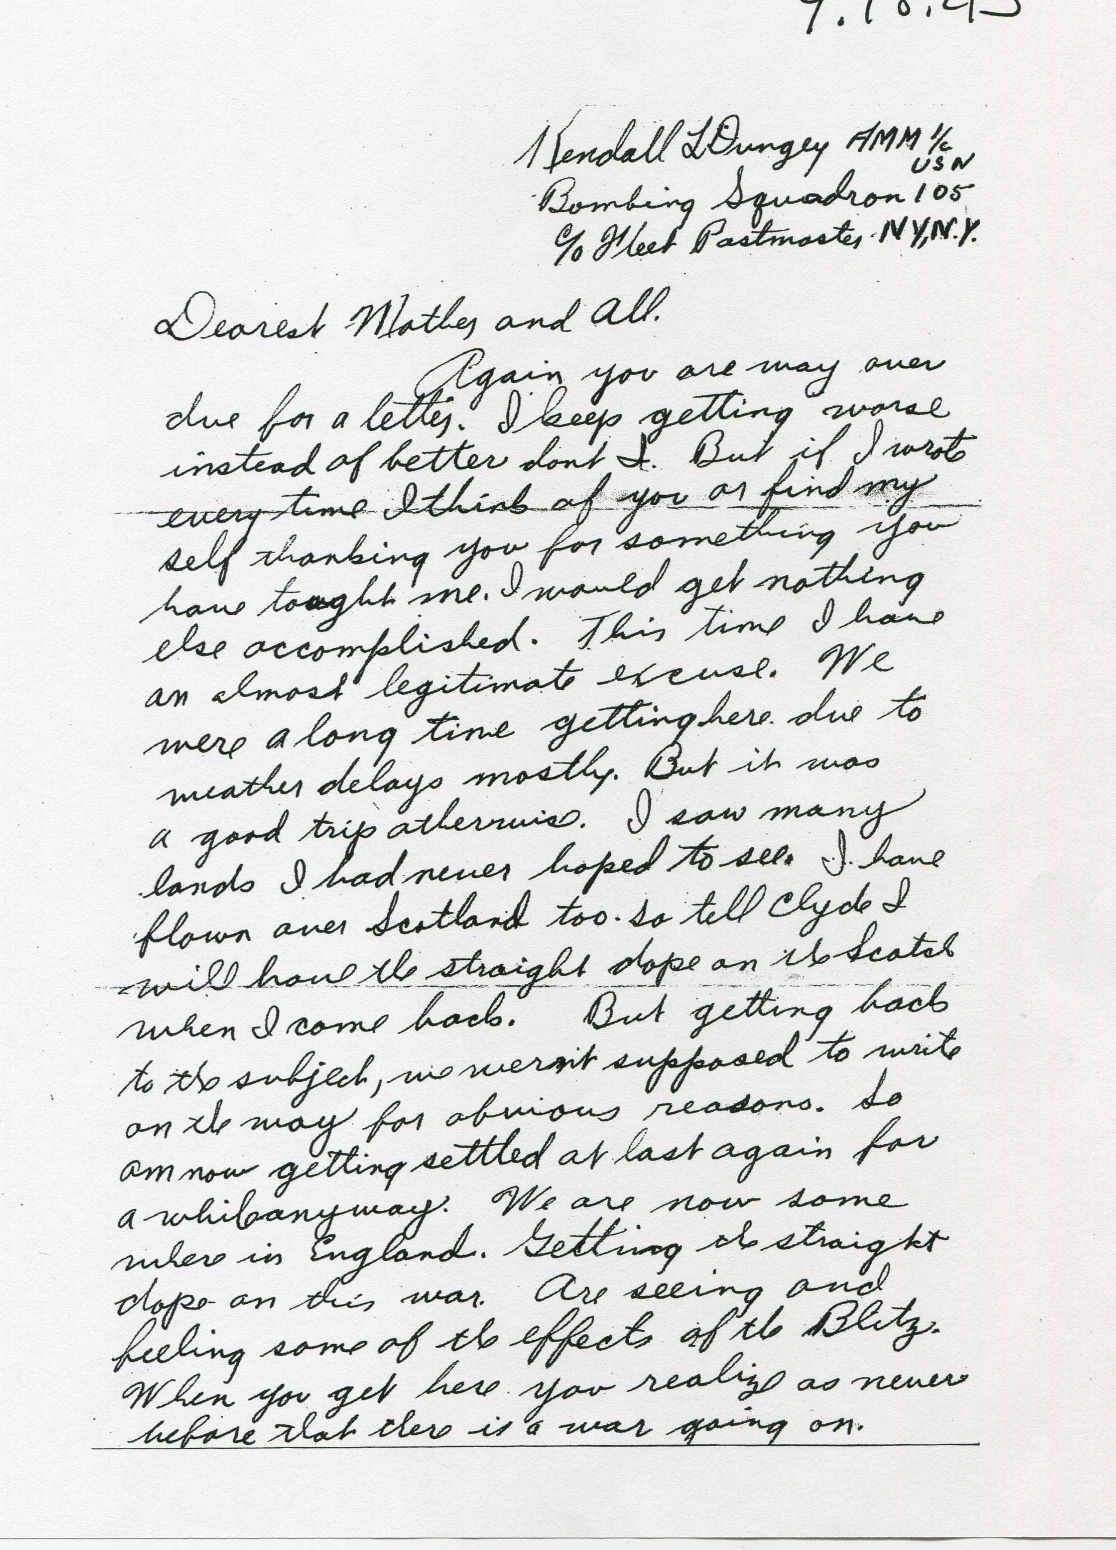 Letters Home from long ago war introduce daughter to